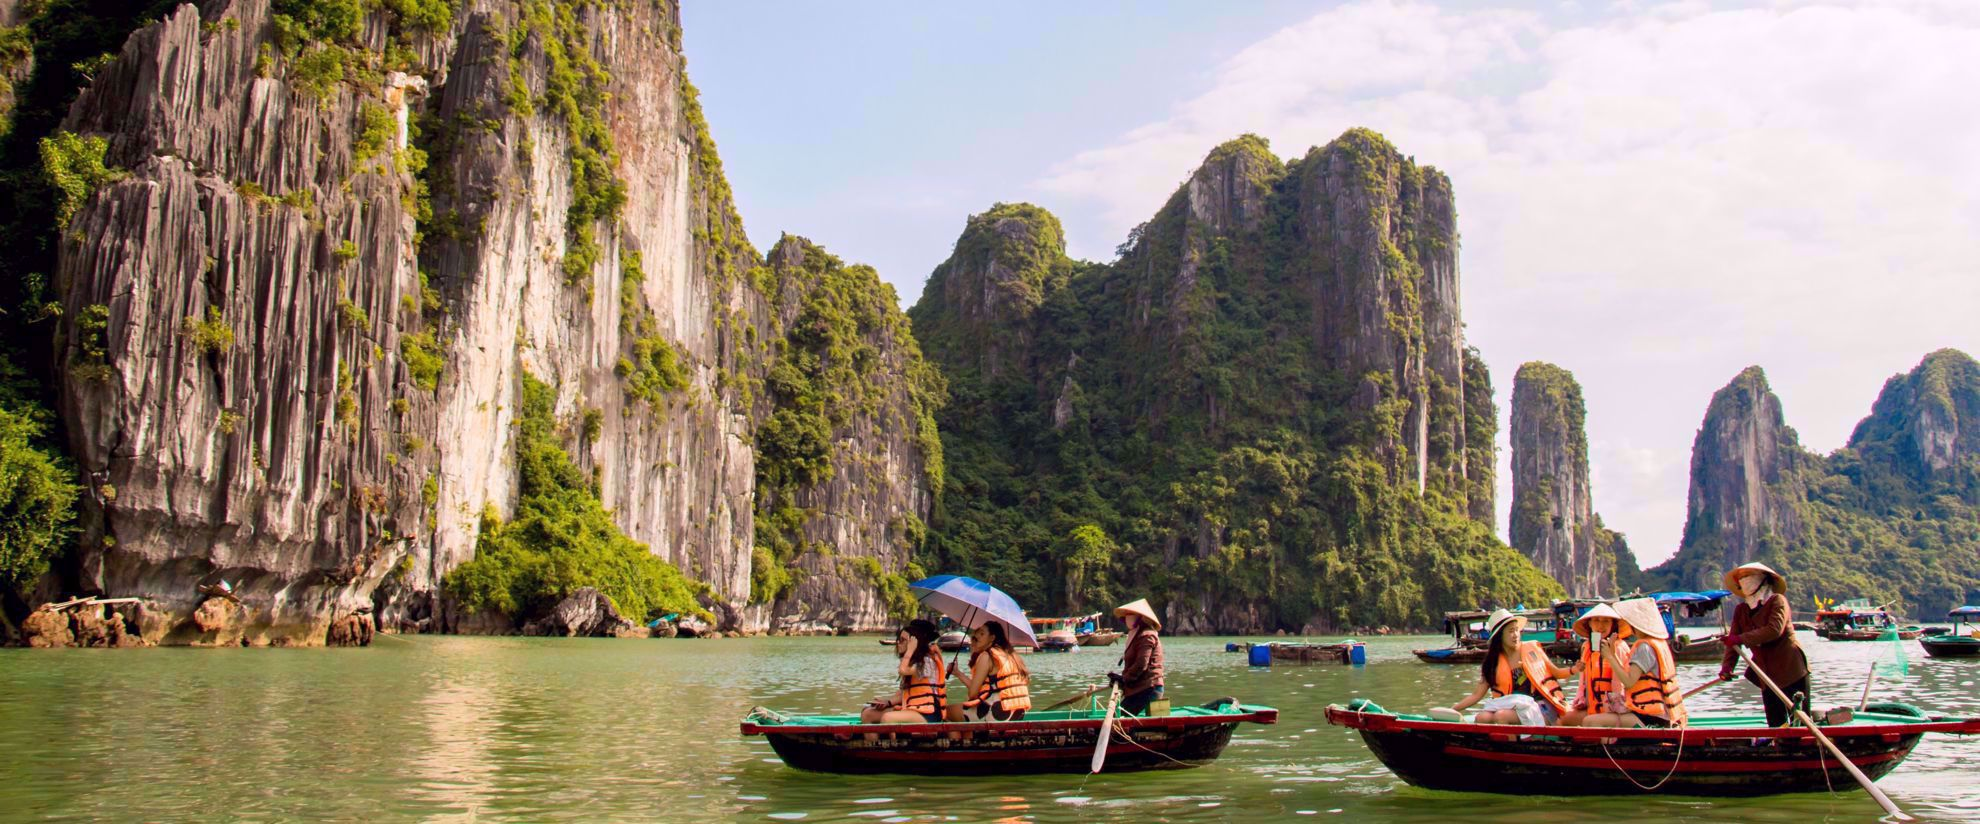 women's group kayaking tour through vietnam